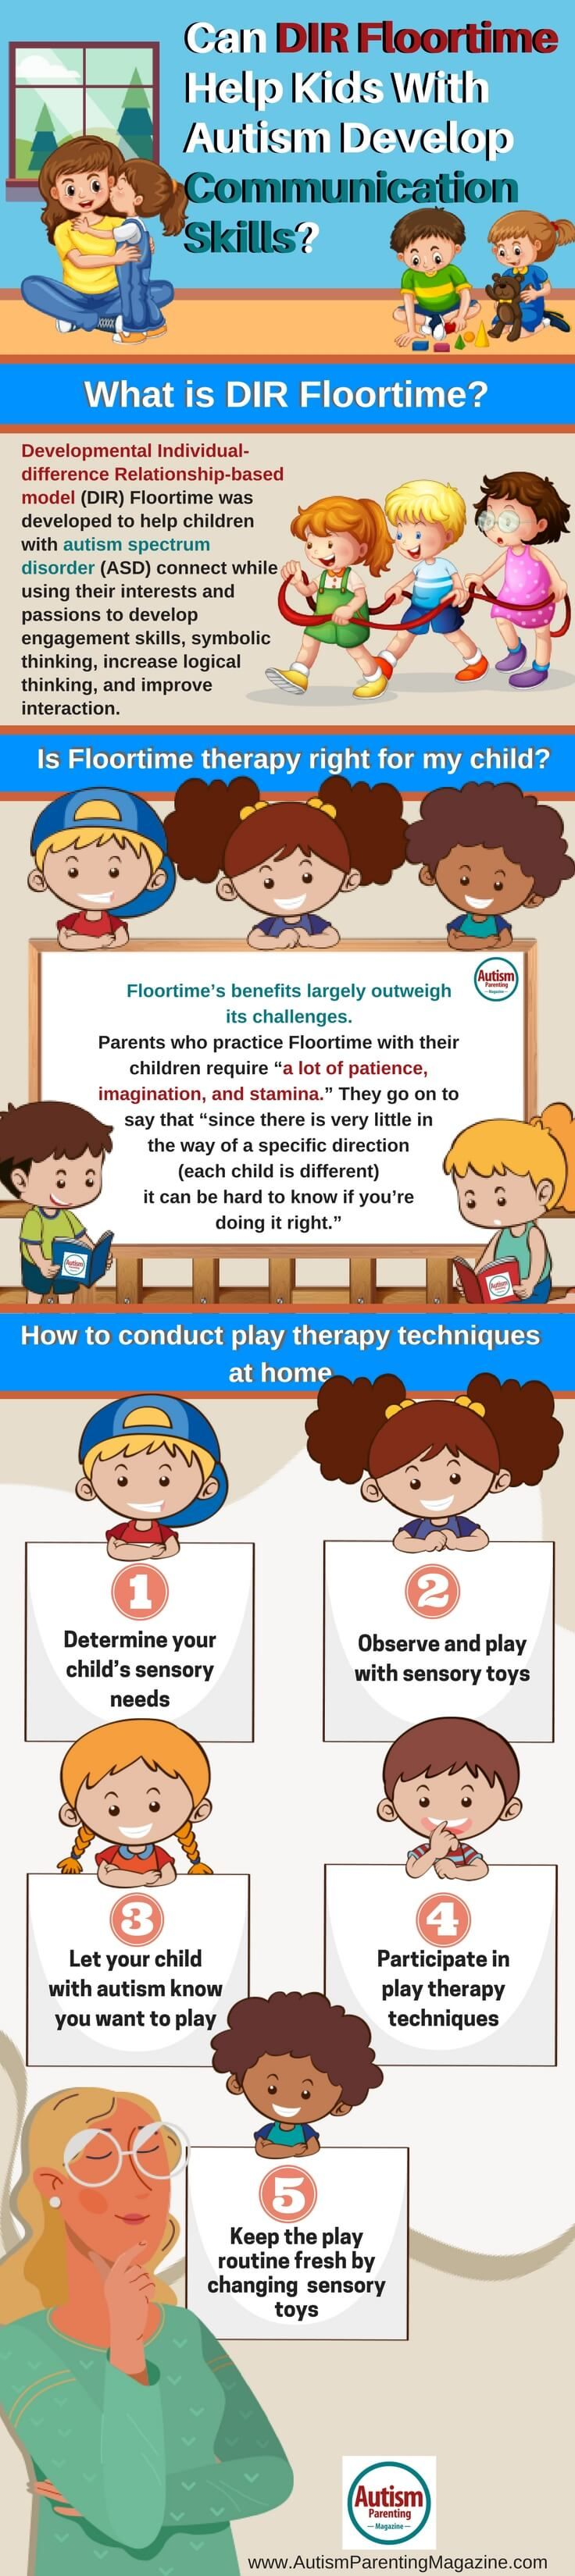 Can Dir Floortime Help Kids With Autism Develop Communication Skills Children With Autism Communication Skills Relationship Skills